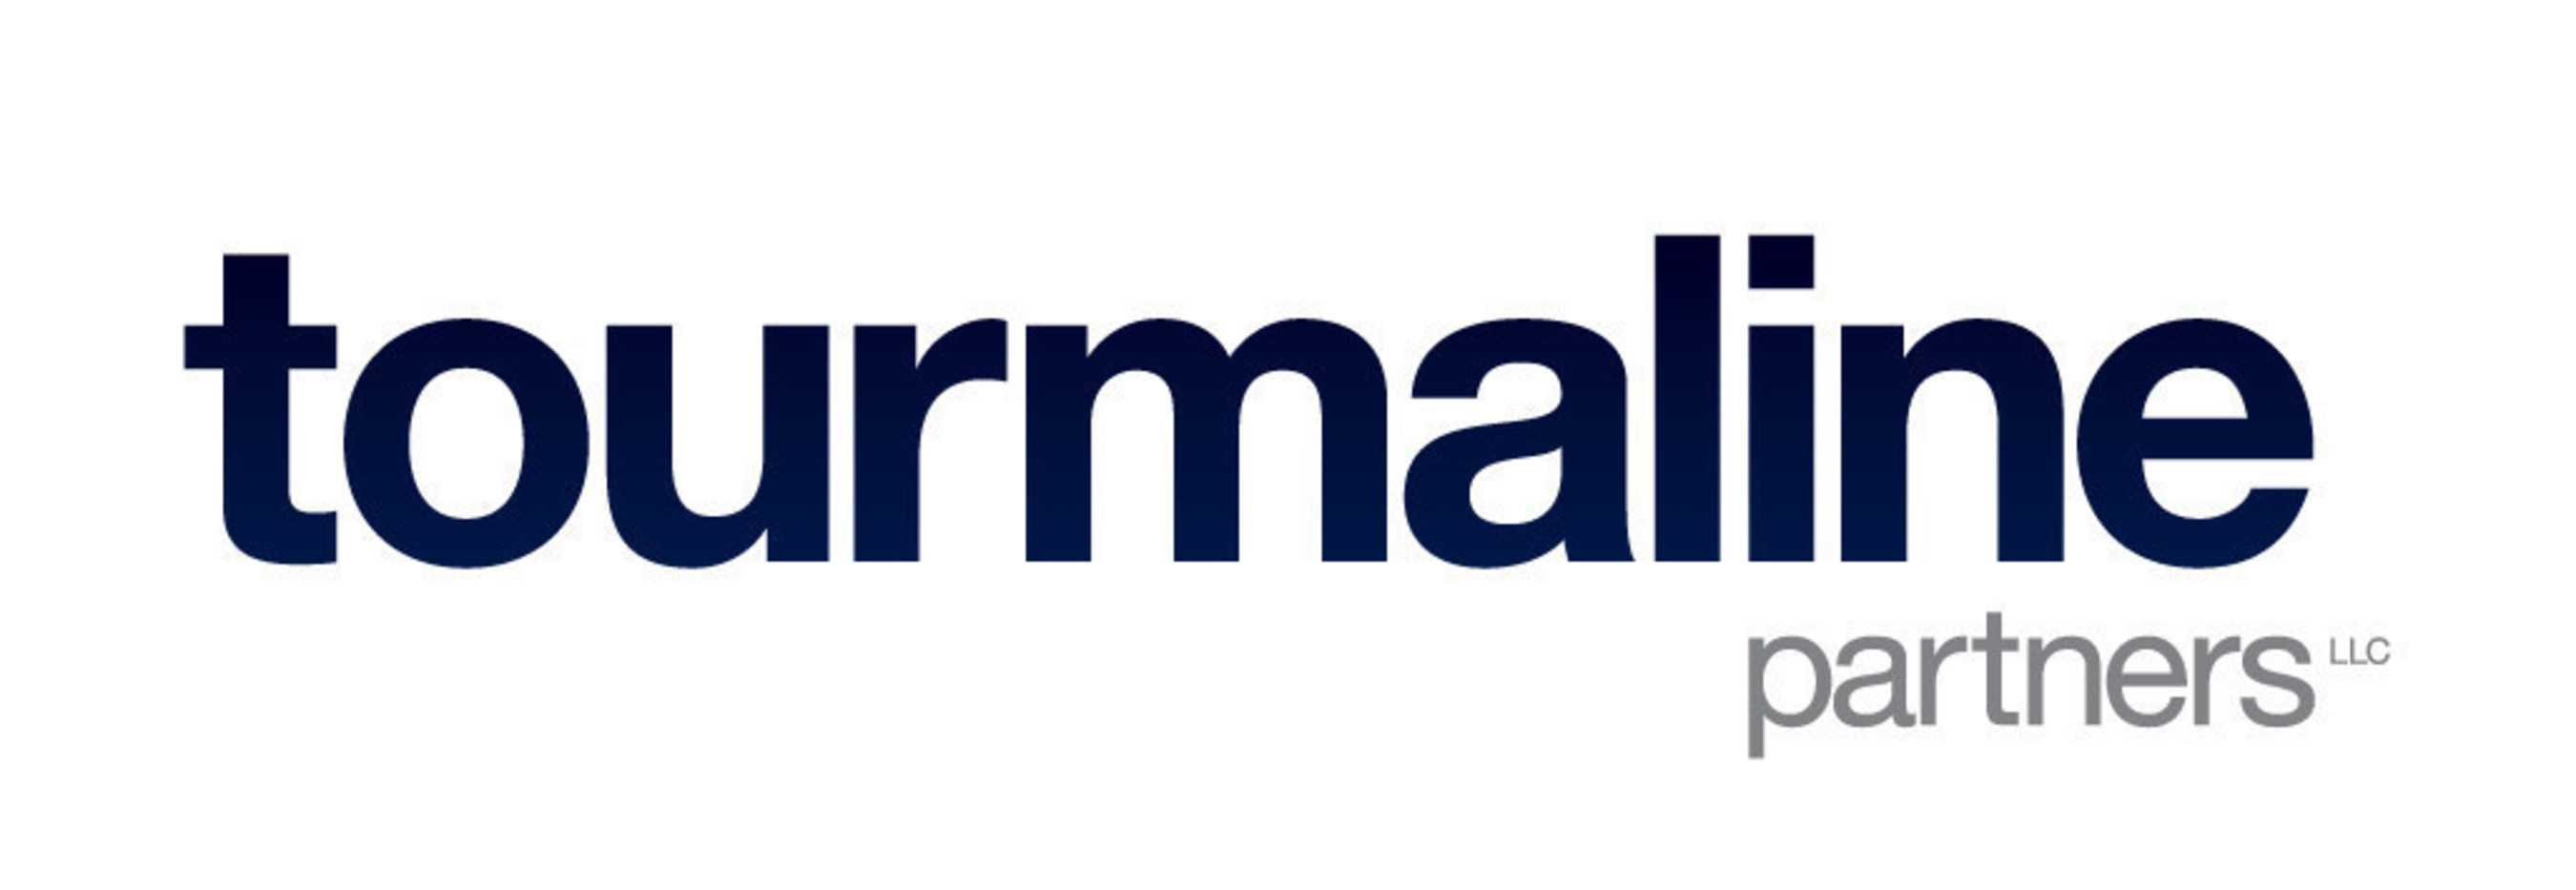 Tourmaline Partners Adds Two Senior Staff to Sydney Office